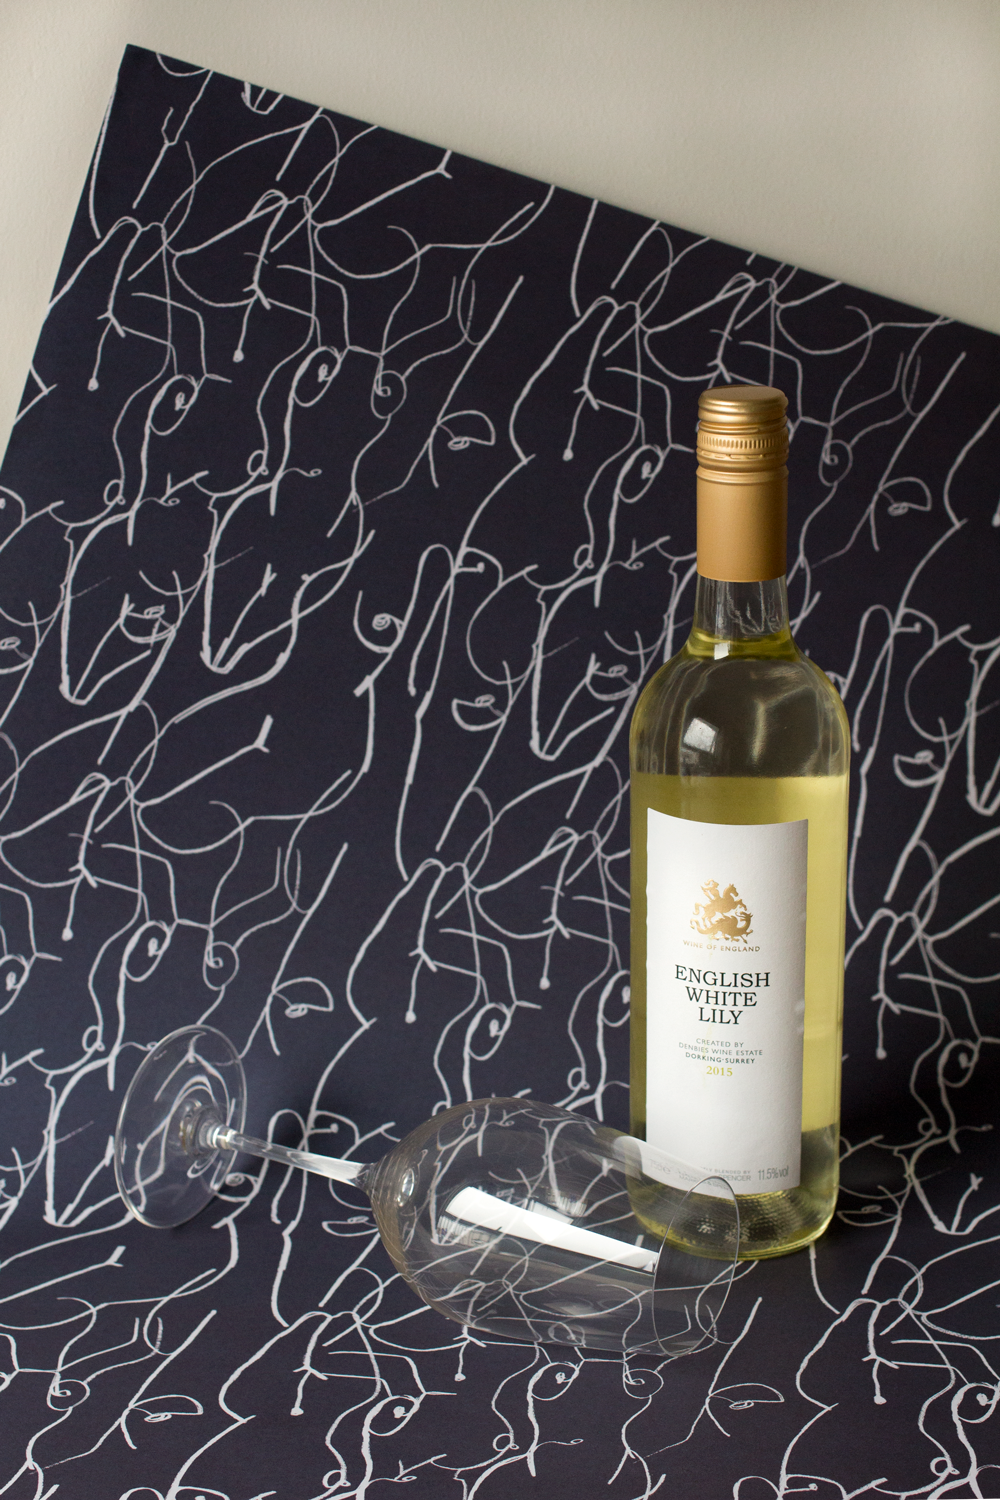 Bottle-Bitches-Wine-Review-of-English-White-Lily-2015-White-Wine.png